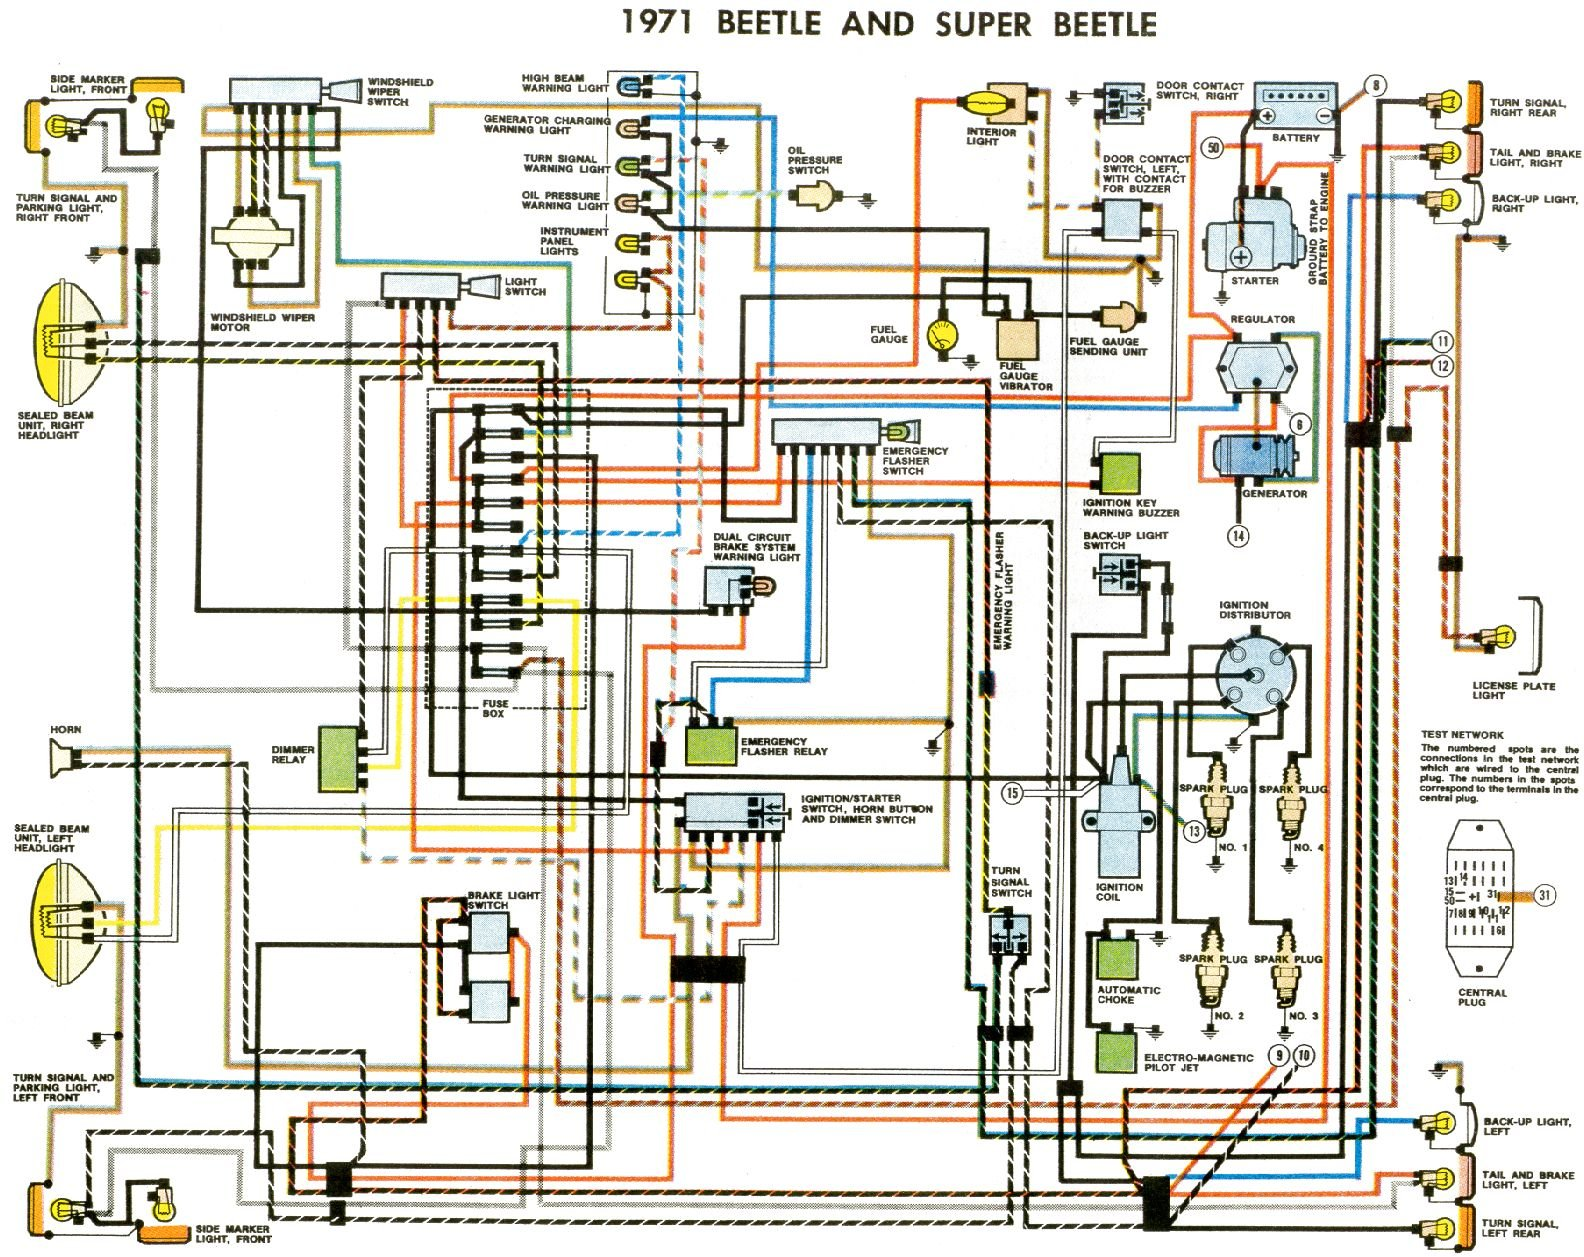 bug_71 1971 beetle wiring diagram (usa) thegoldenbug com 1968 vw beetle wiring diagram at bayanpartner.co